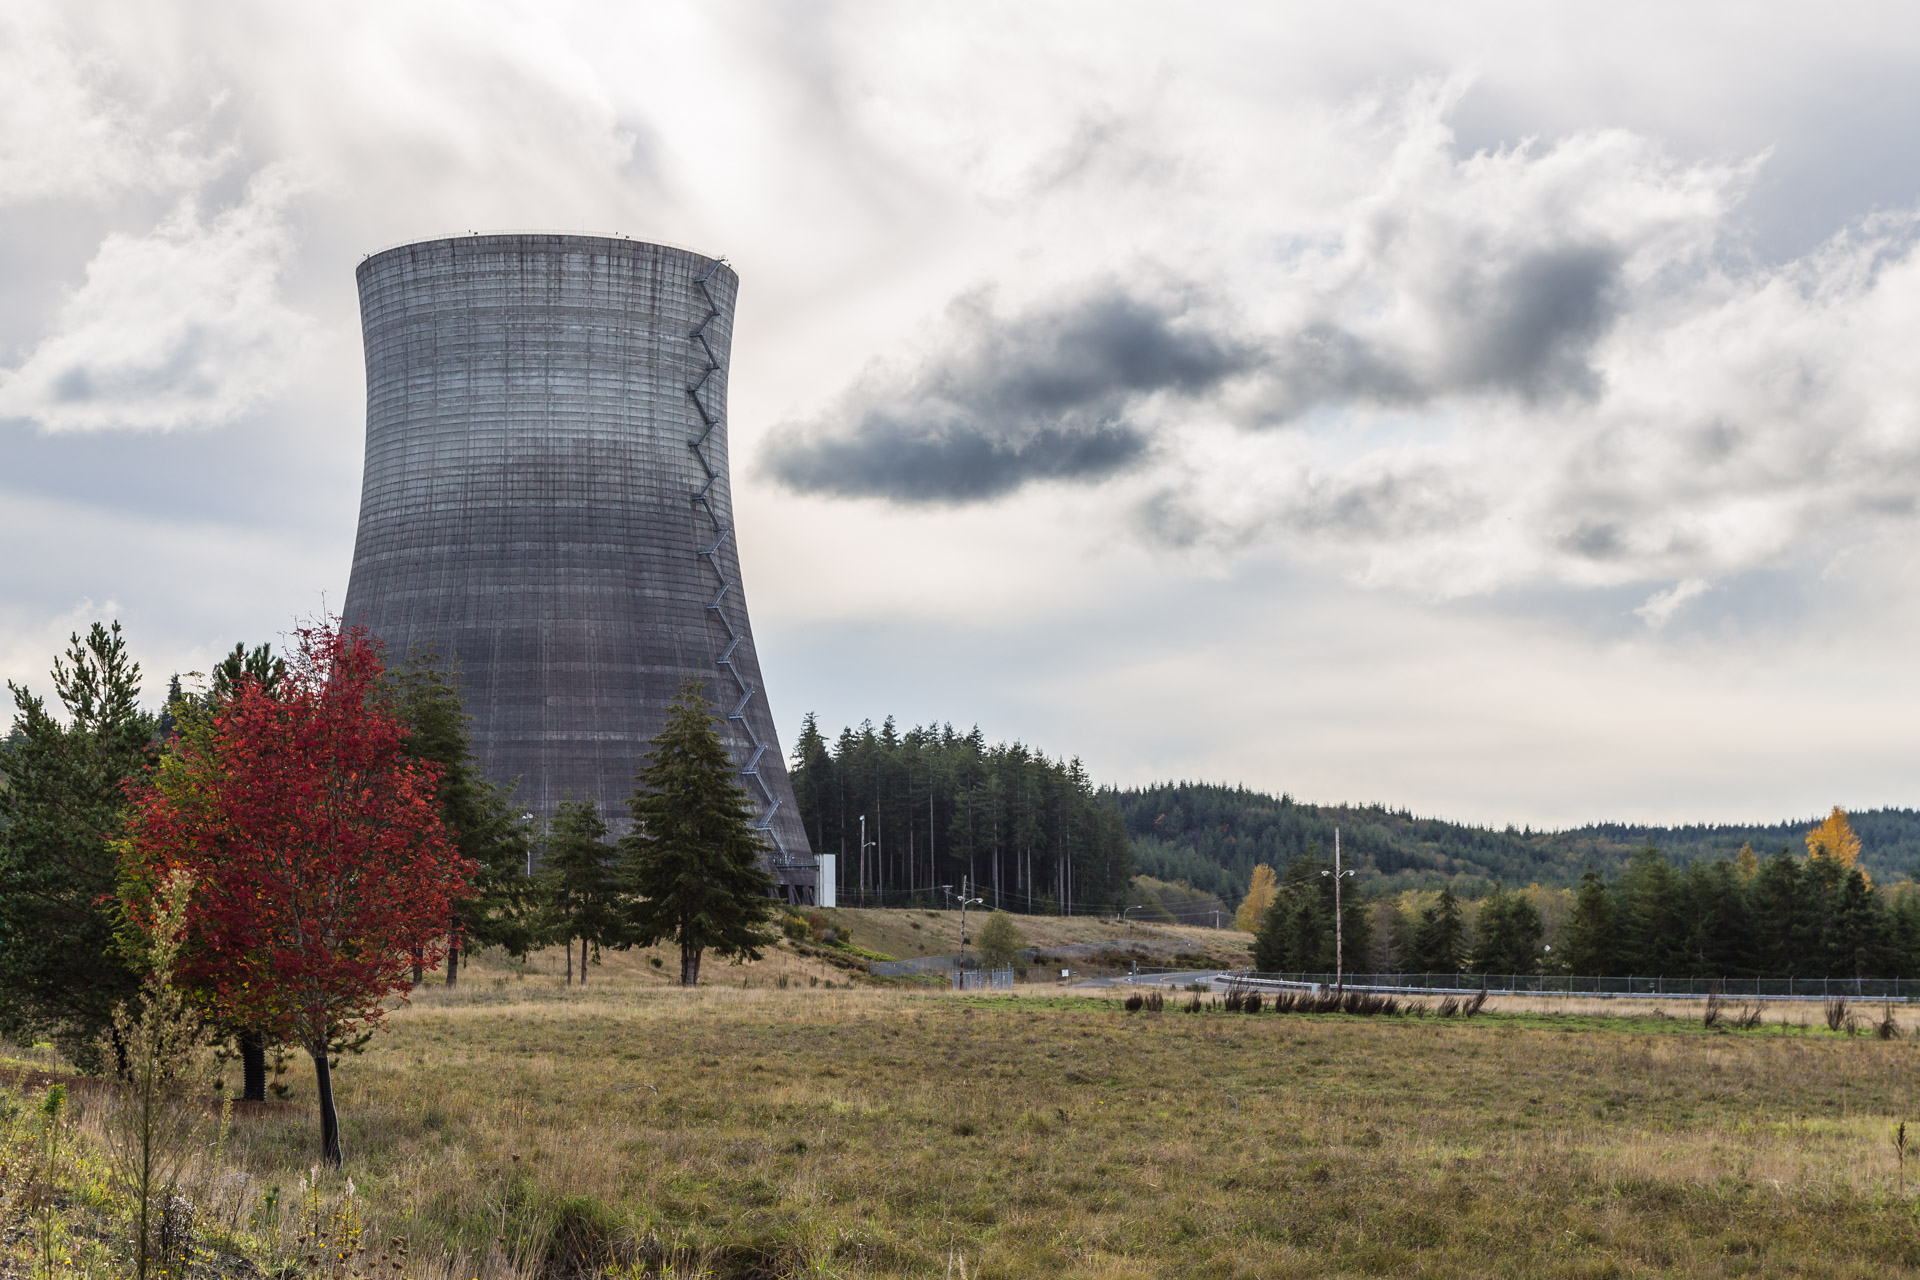 Satsop (far highway)